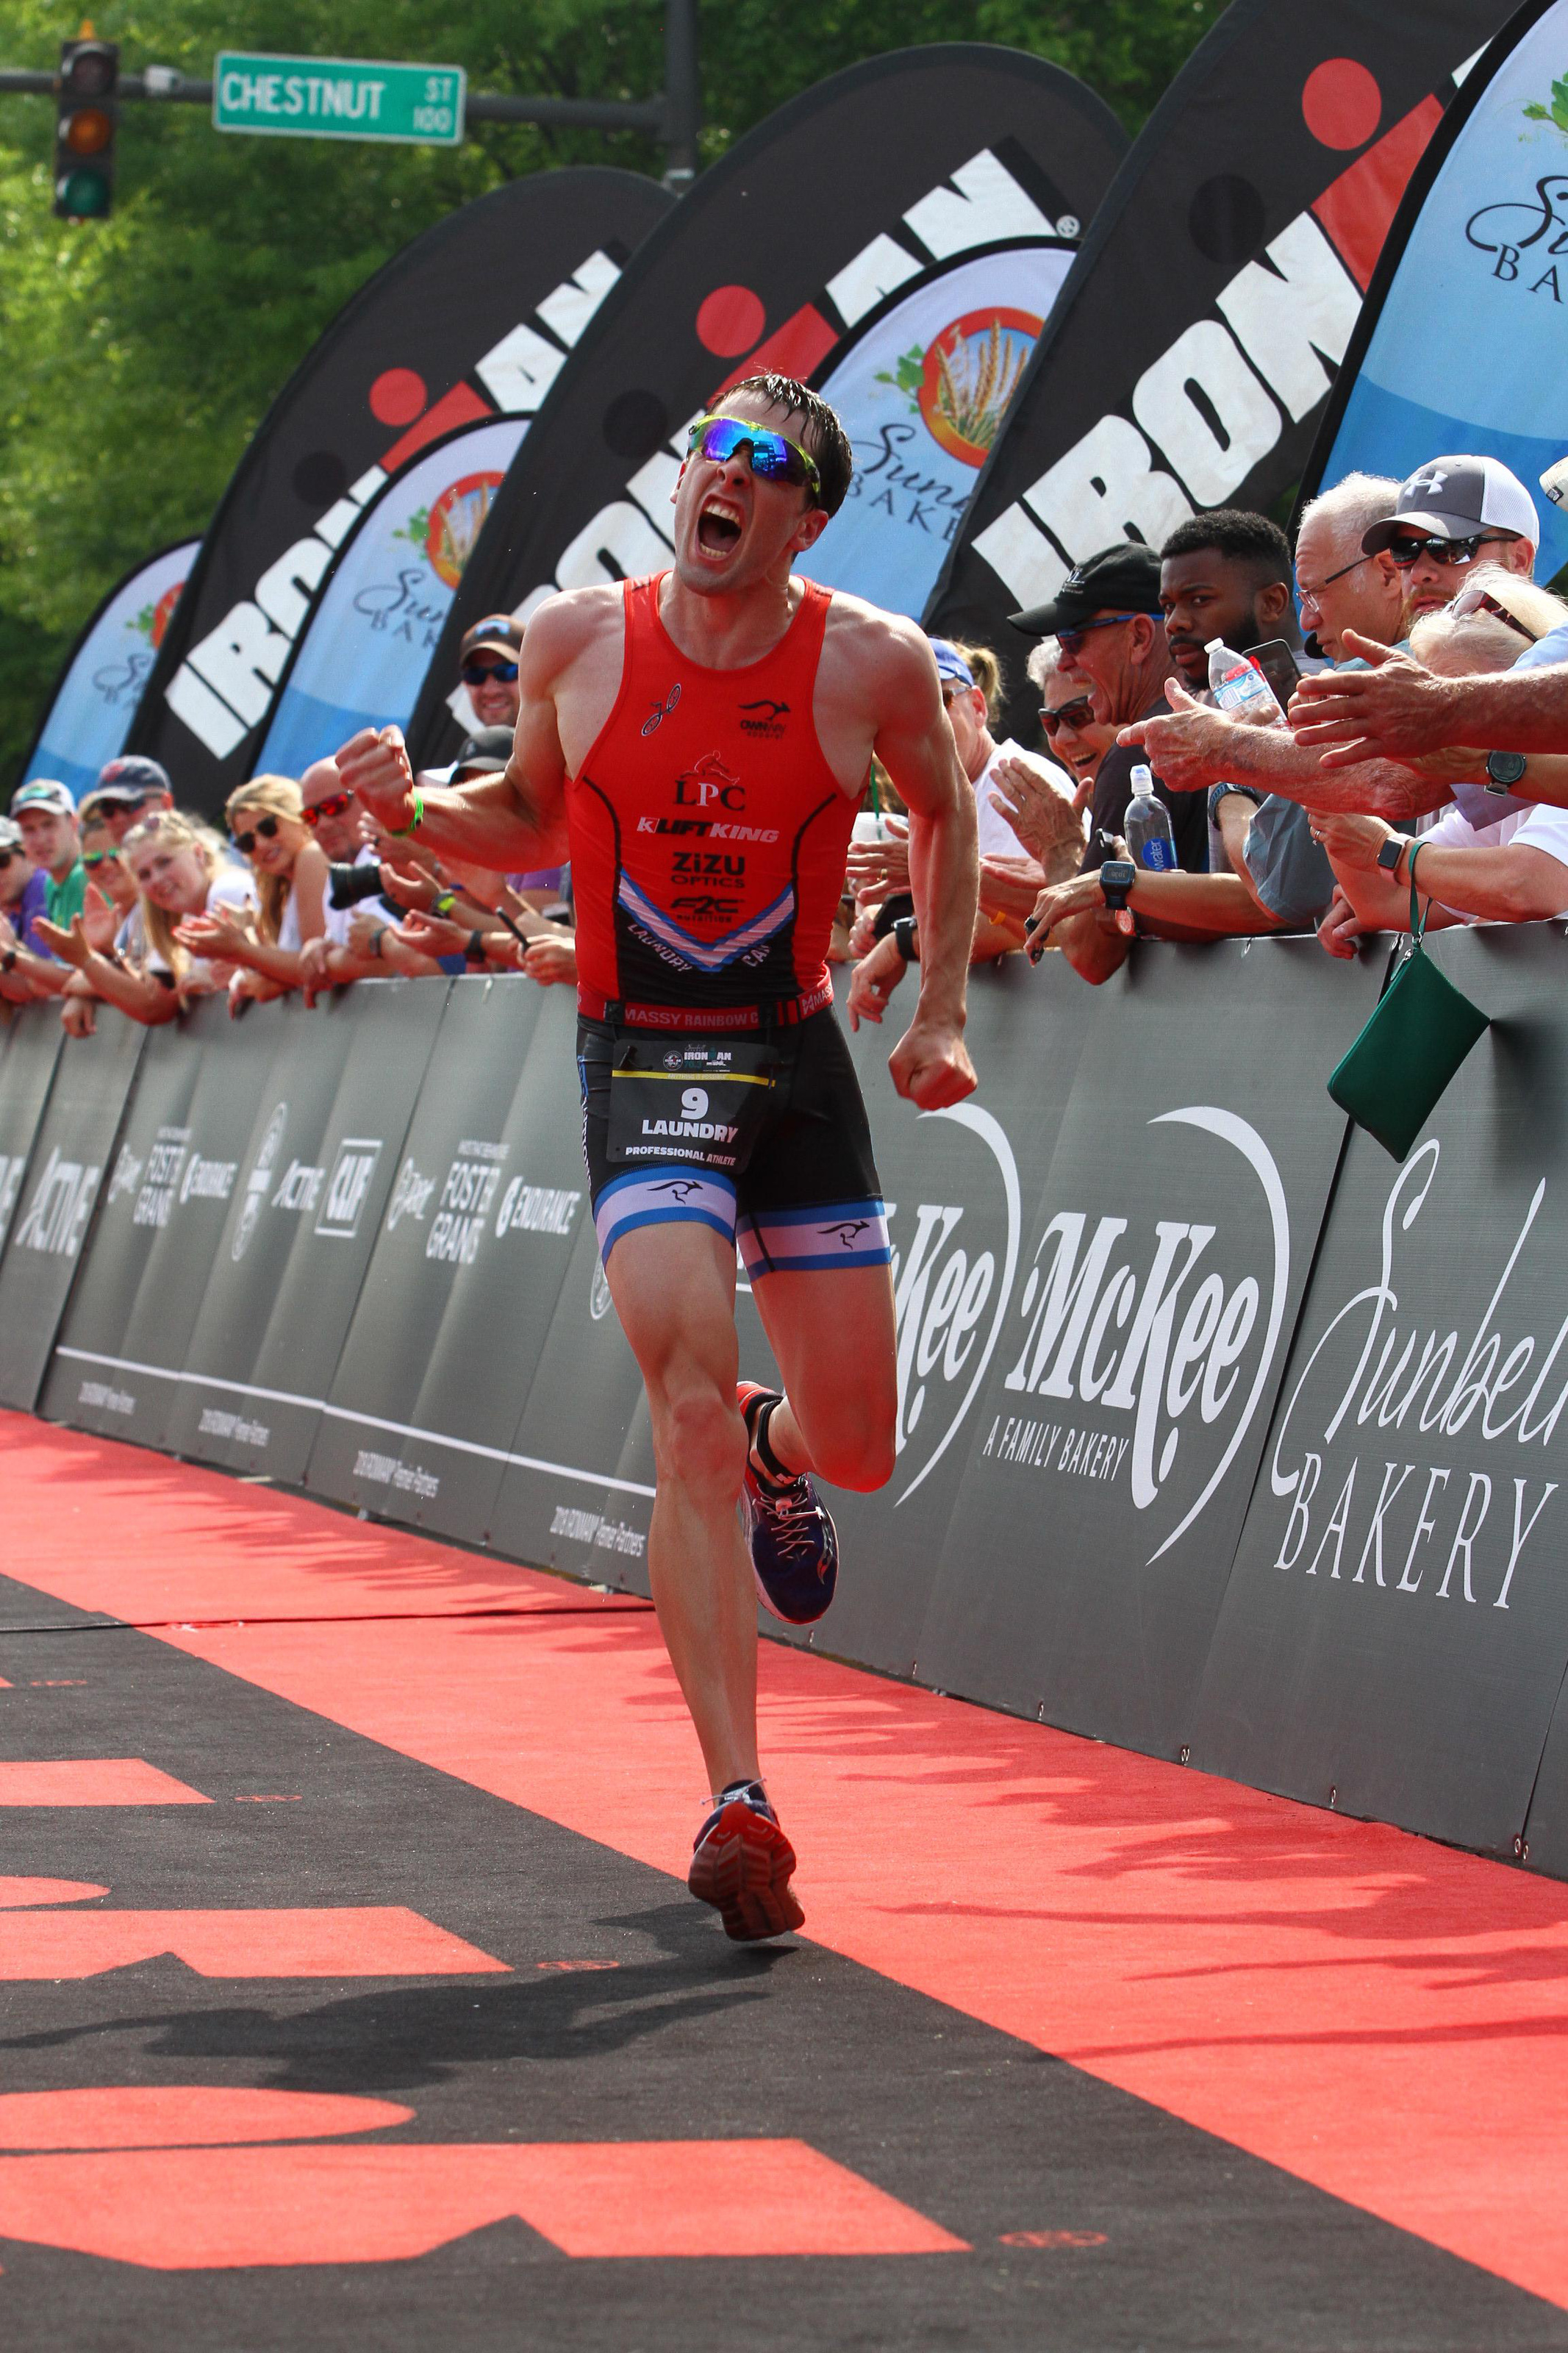 Coming down the finish chute at Ironman 70.3 Chattanooga. Photo by Finisher Pix